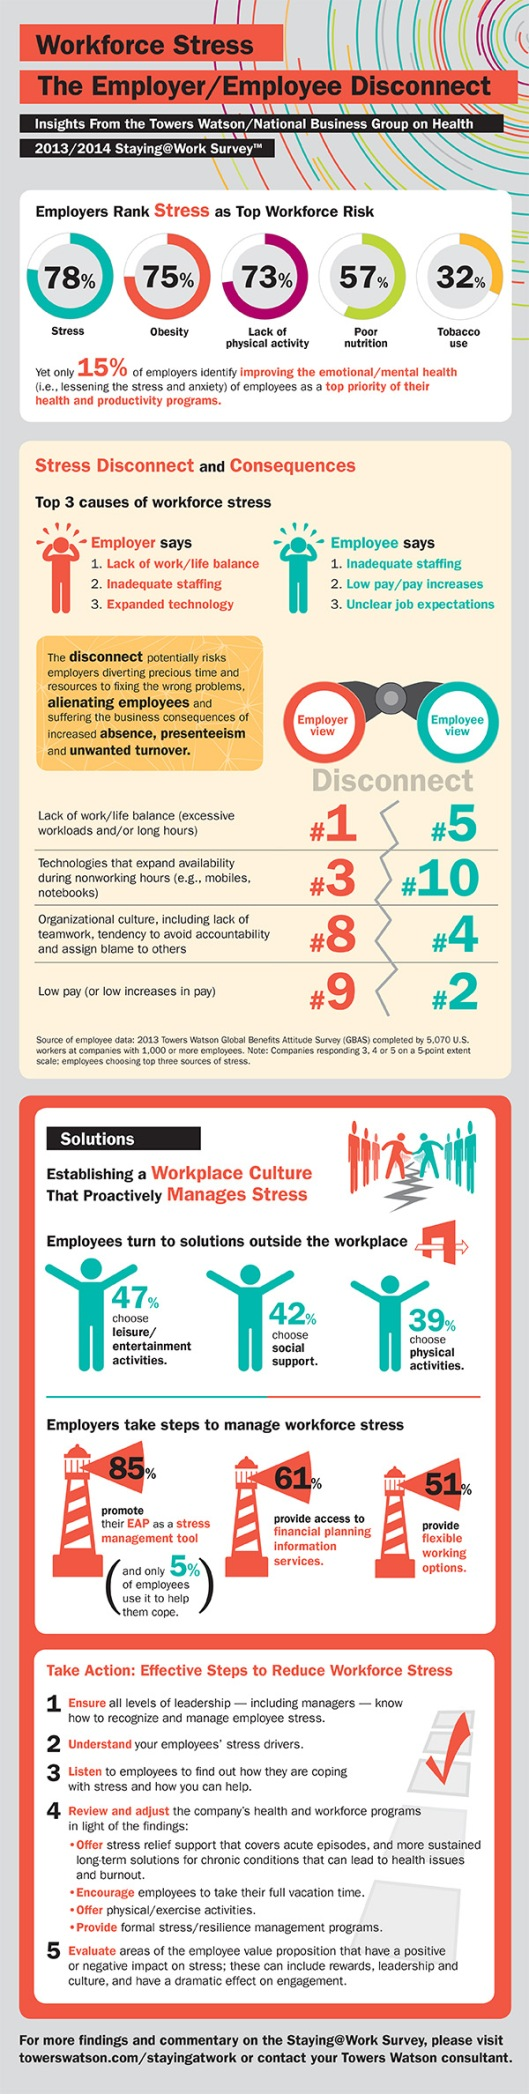 Workforce stress infographic